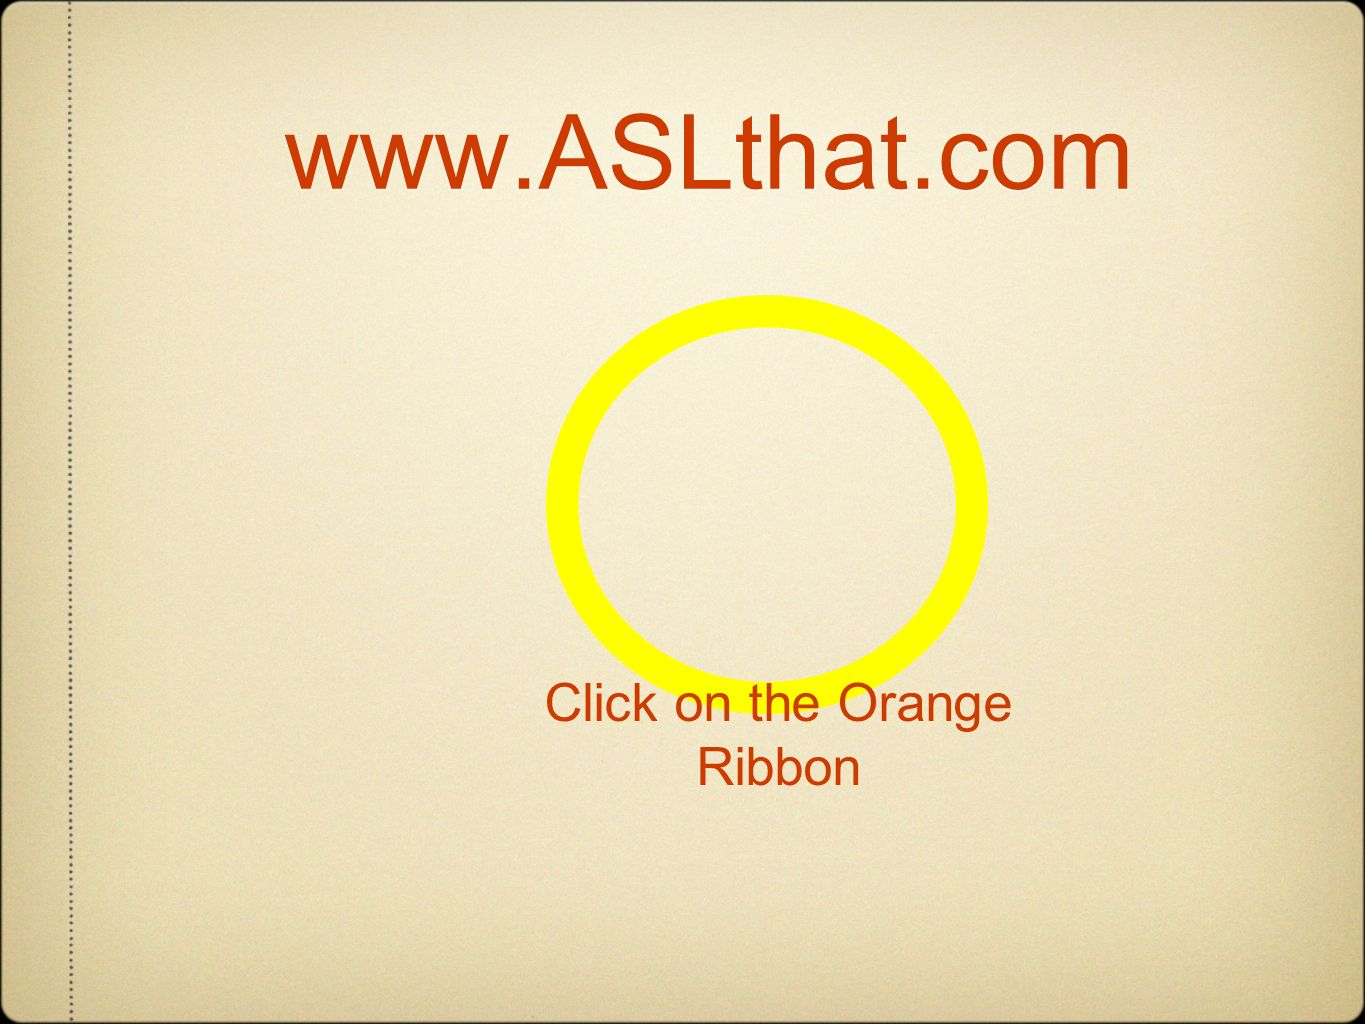 www.ASLthat.com Click on the Orange Ribbon